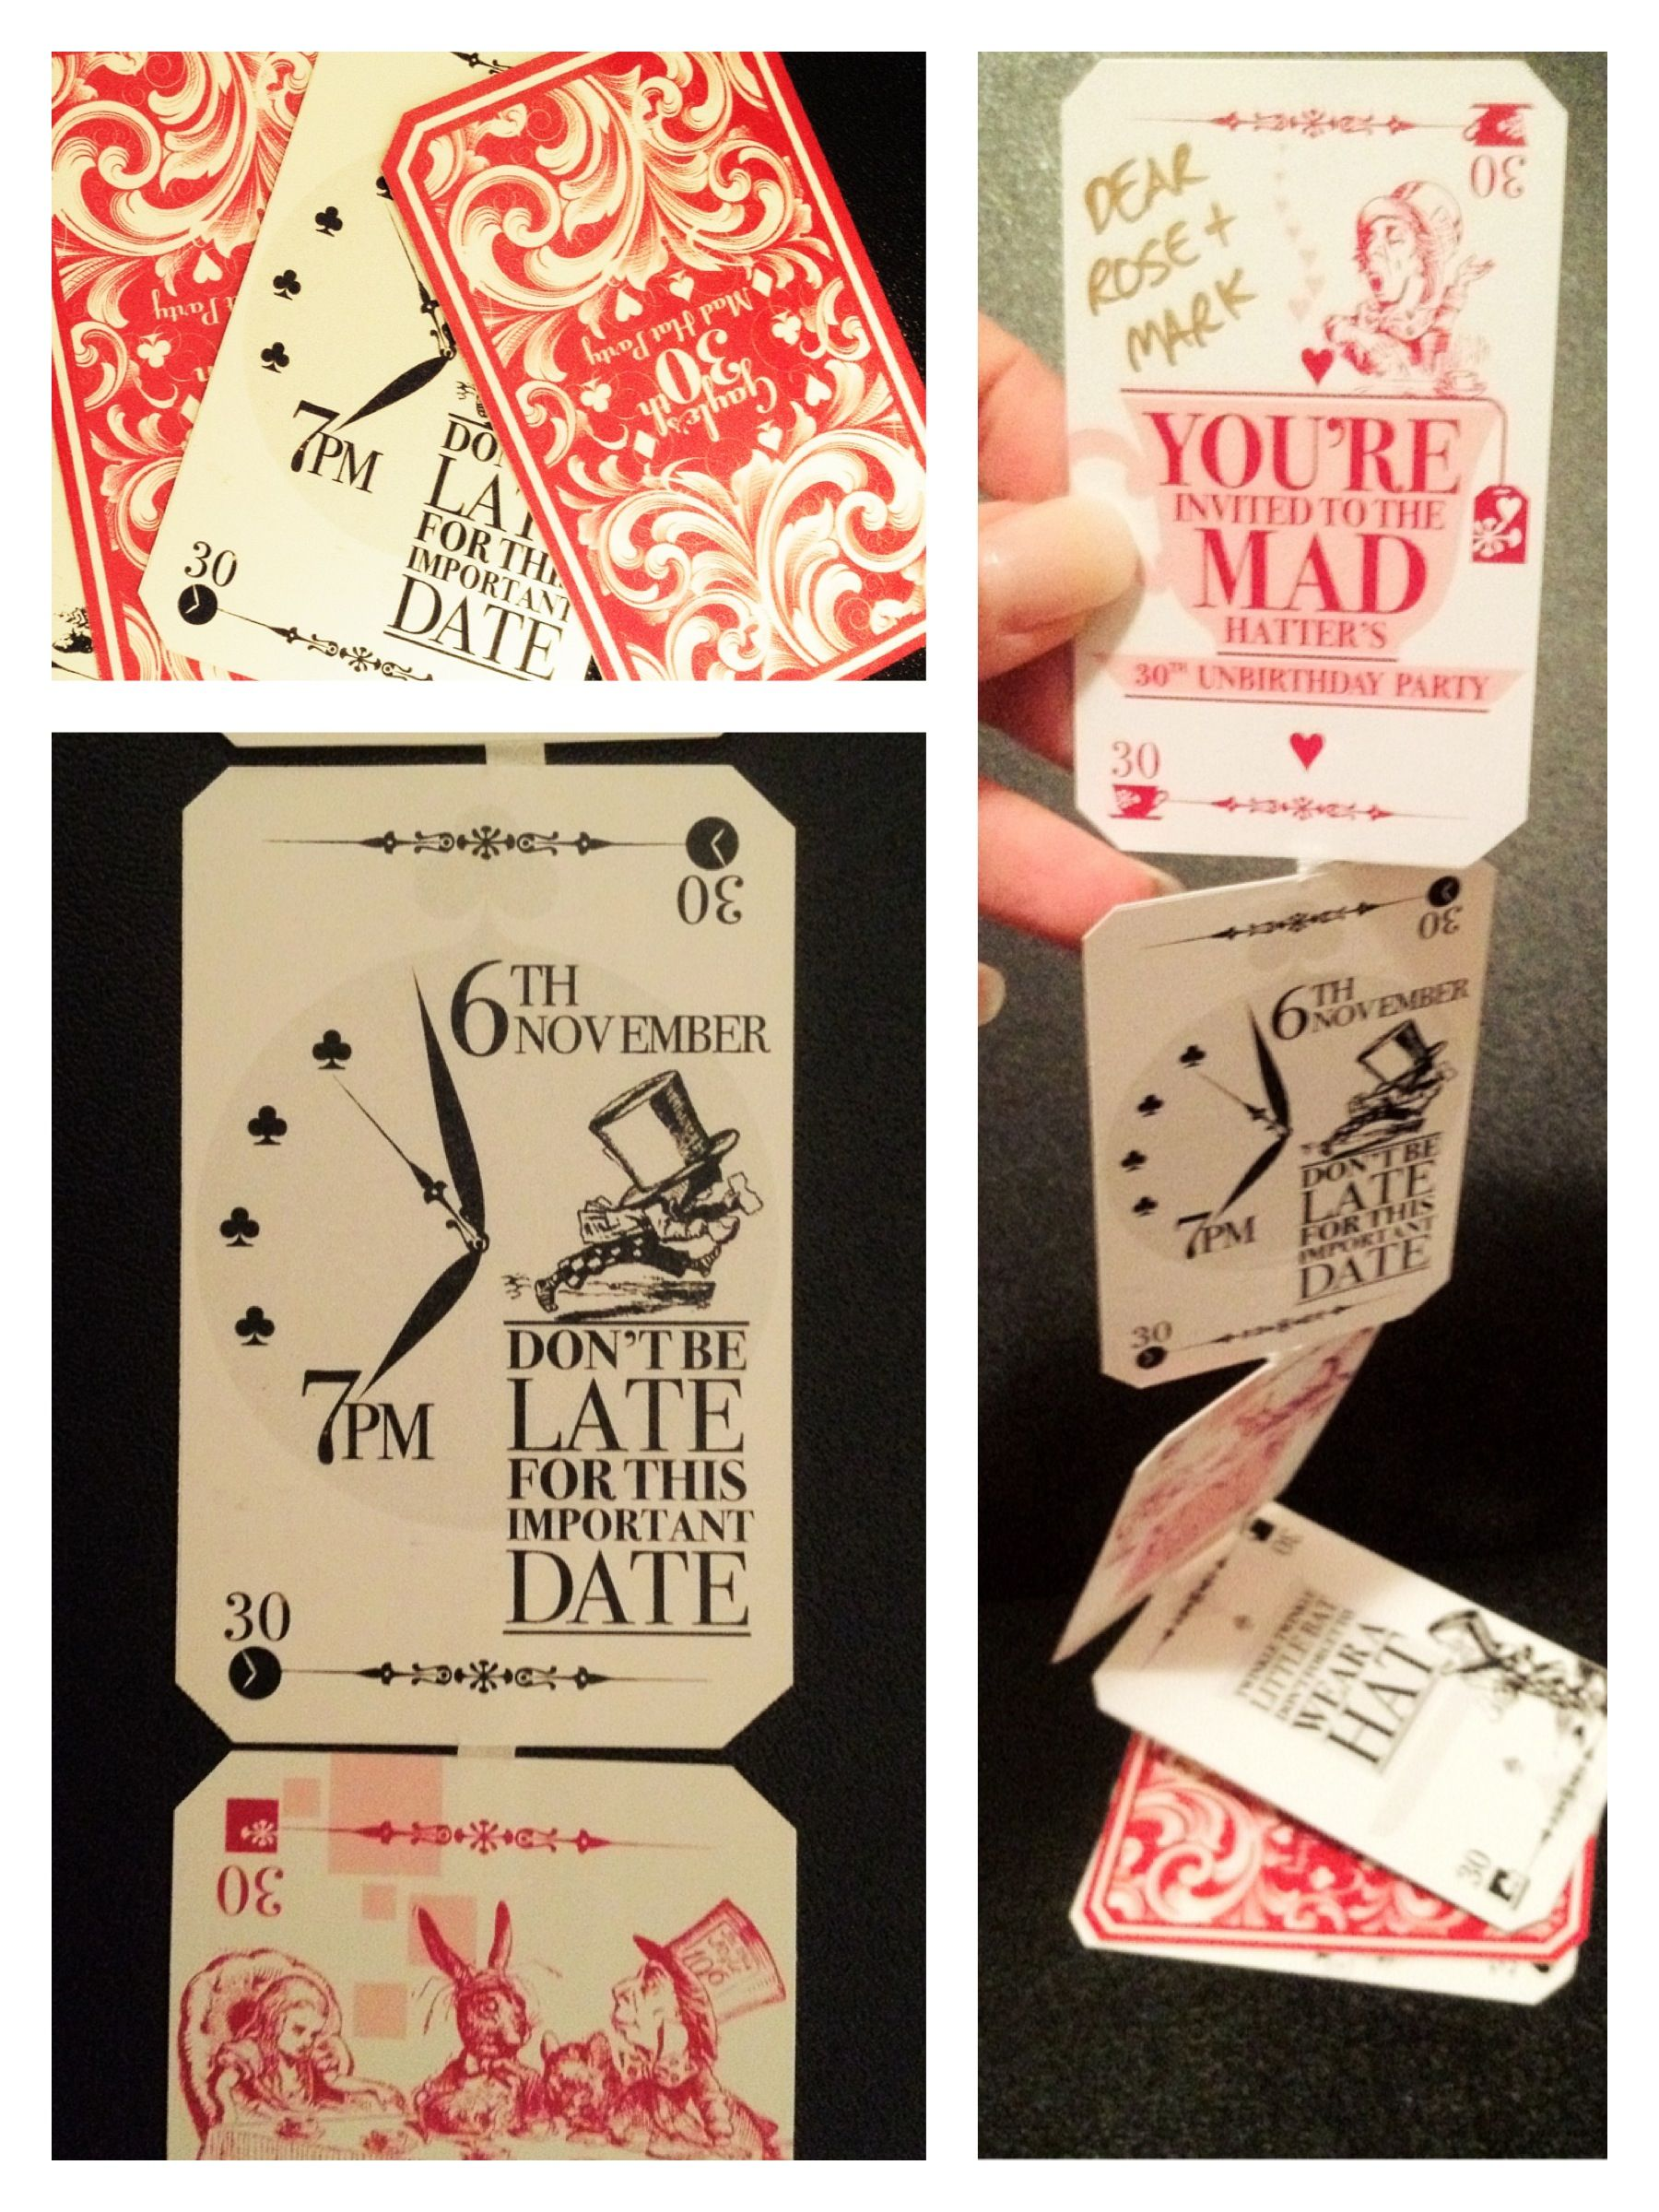 mad hatter teparty invitations pinterest%0A A pack of cards for a   th Invitation for a Mad Hatter u    s tea party